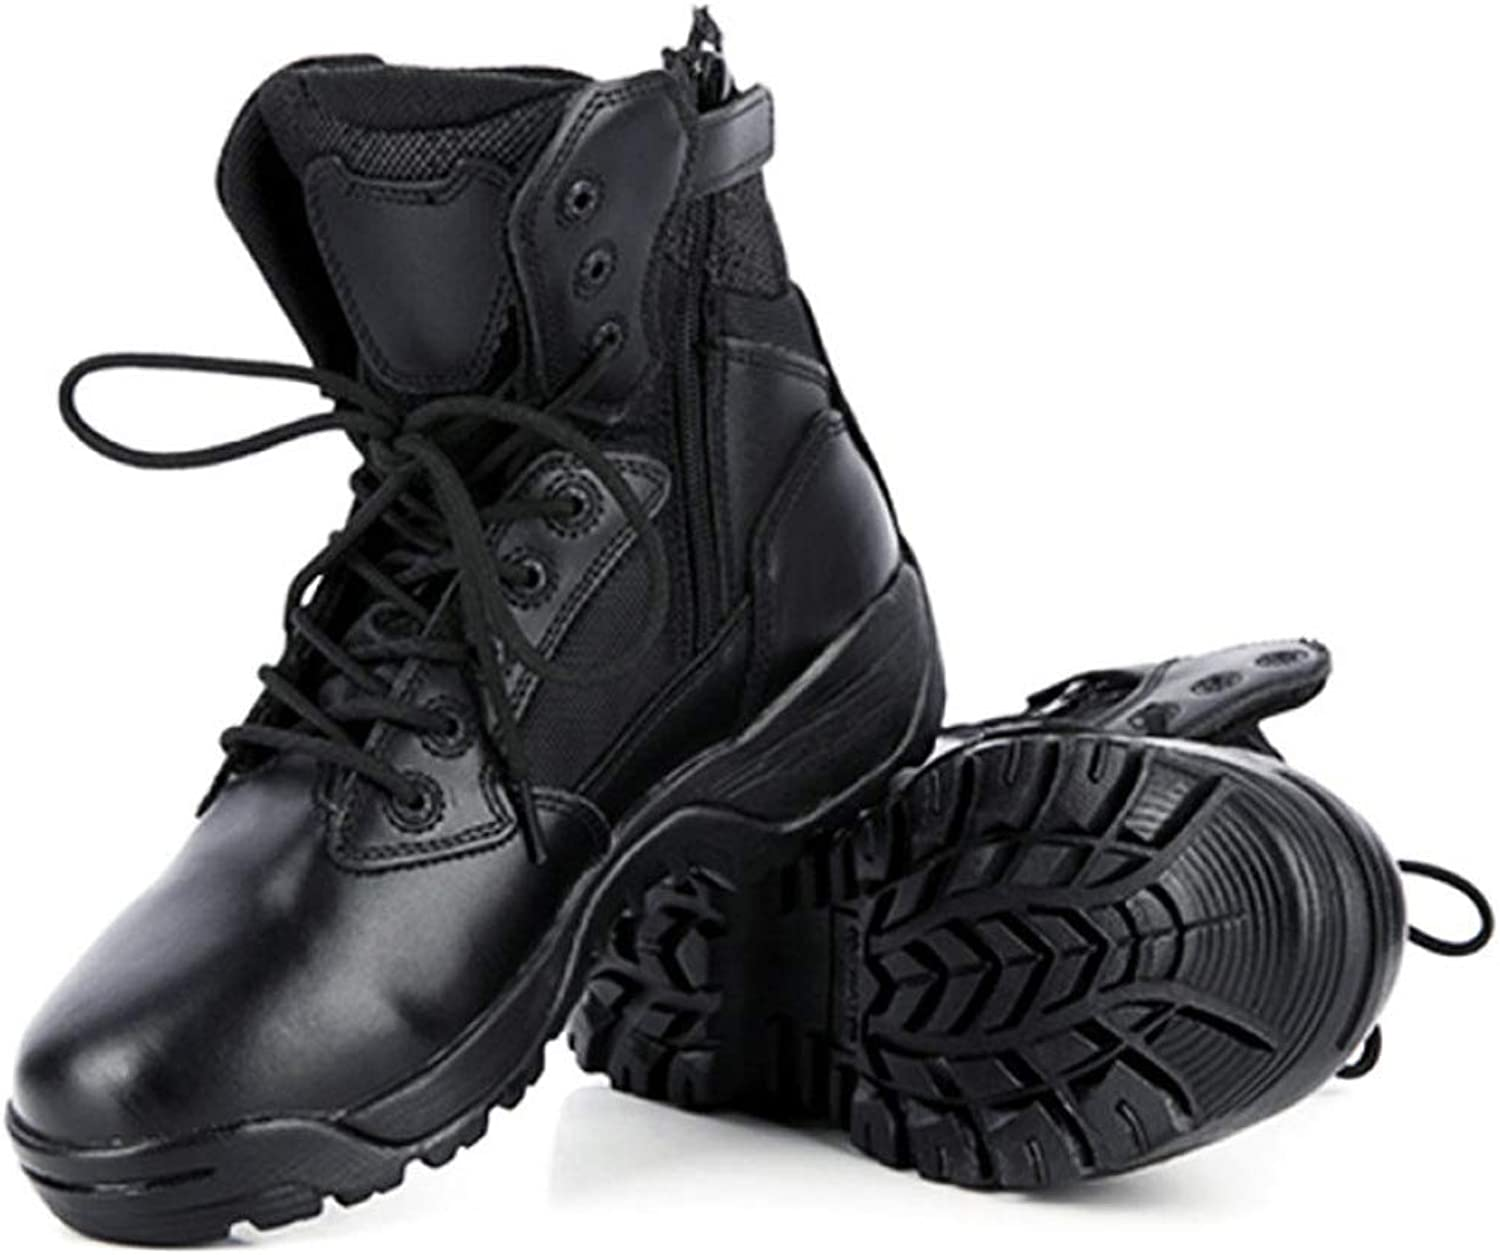 Mens High Top Police Armed Tactics Boots Desert Special Forces Military Army Combat shoes Outdoor Mountaineering Safety Leather Footwear